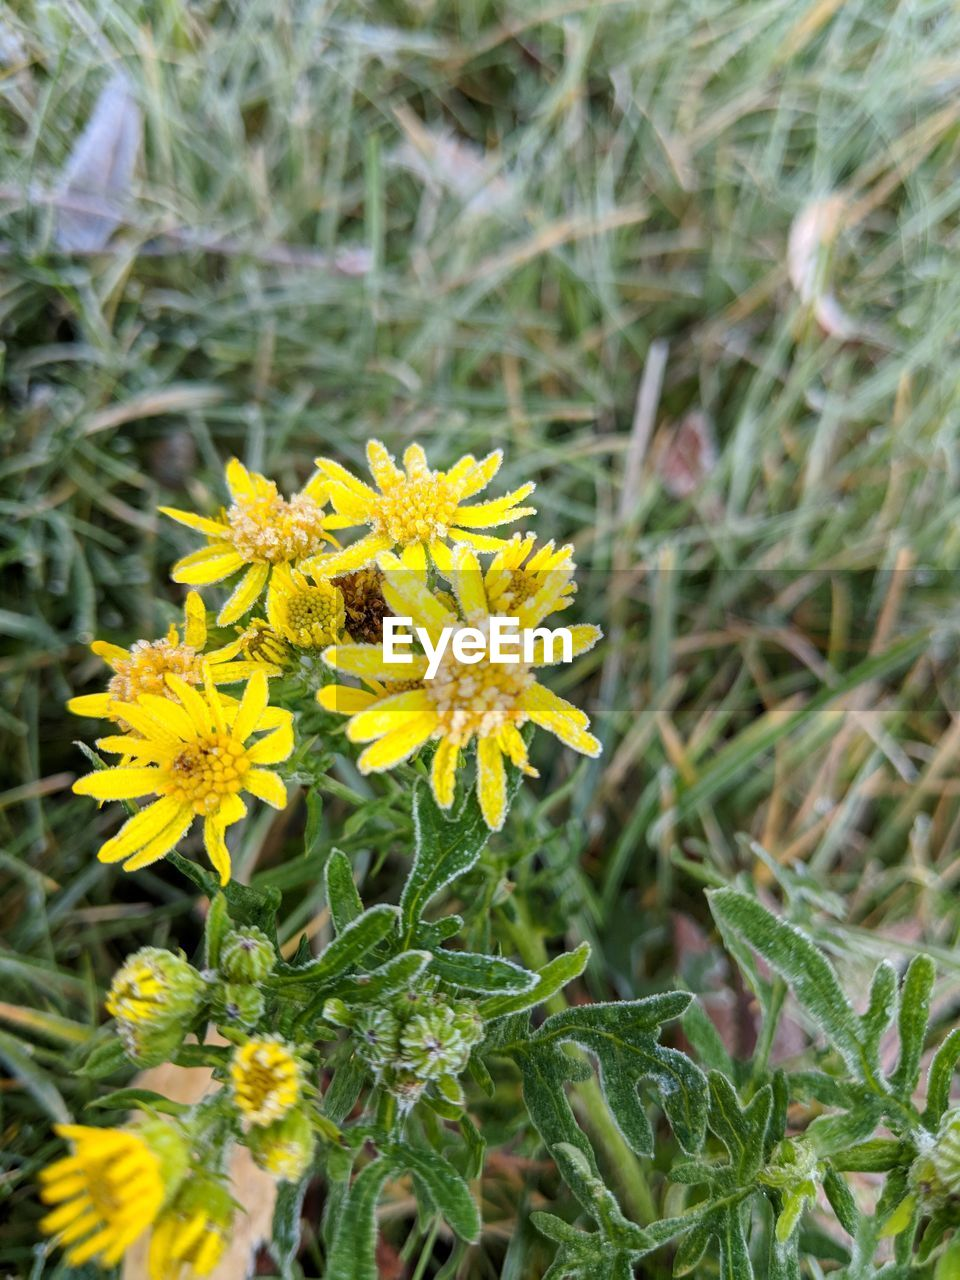 flower, growth, plant, fragility, petal, nature, yellow, beauty in nature, flower head, freshness, outdoors, day, field, blooming, no people, green color, close-up, leaf, grass, animal themes